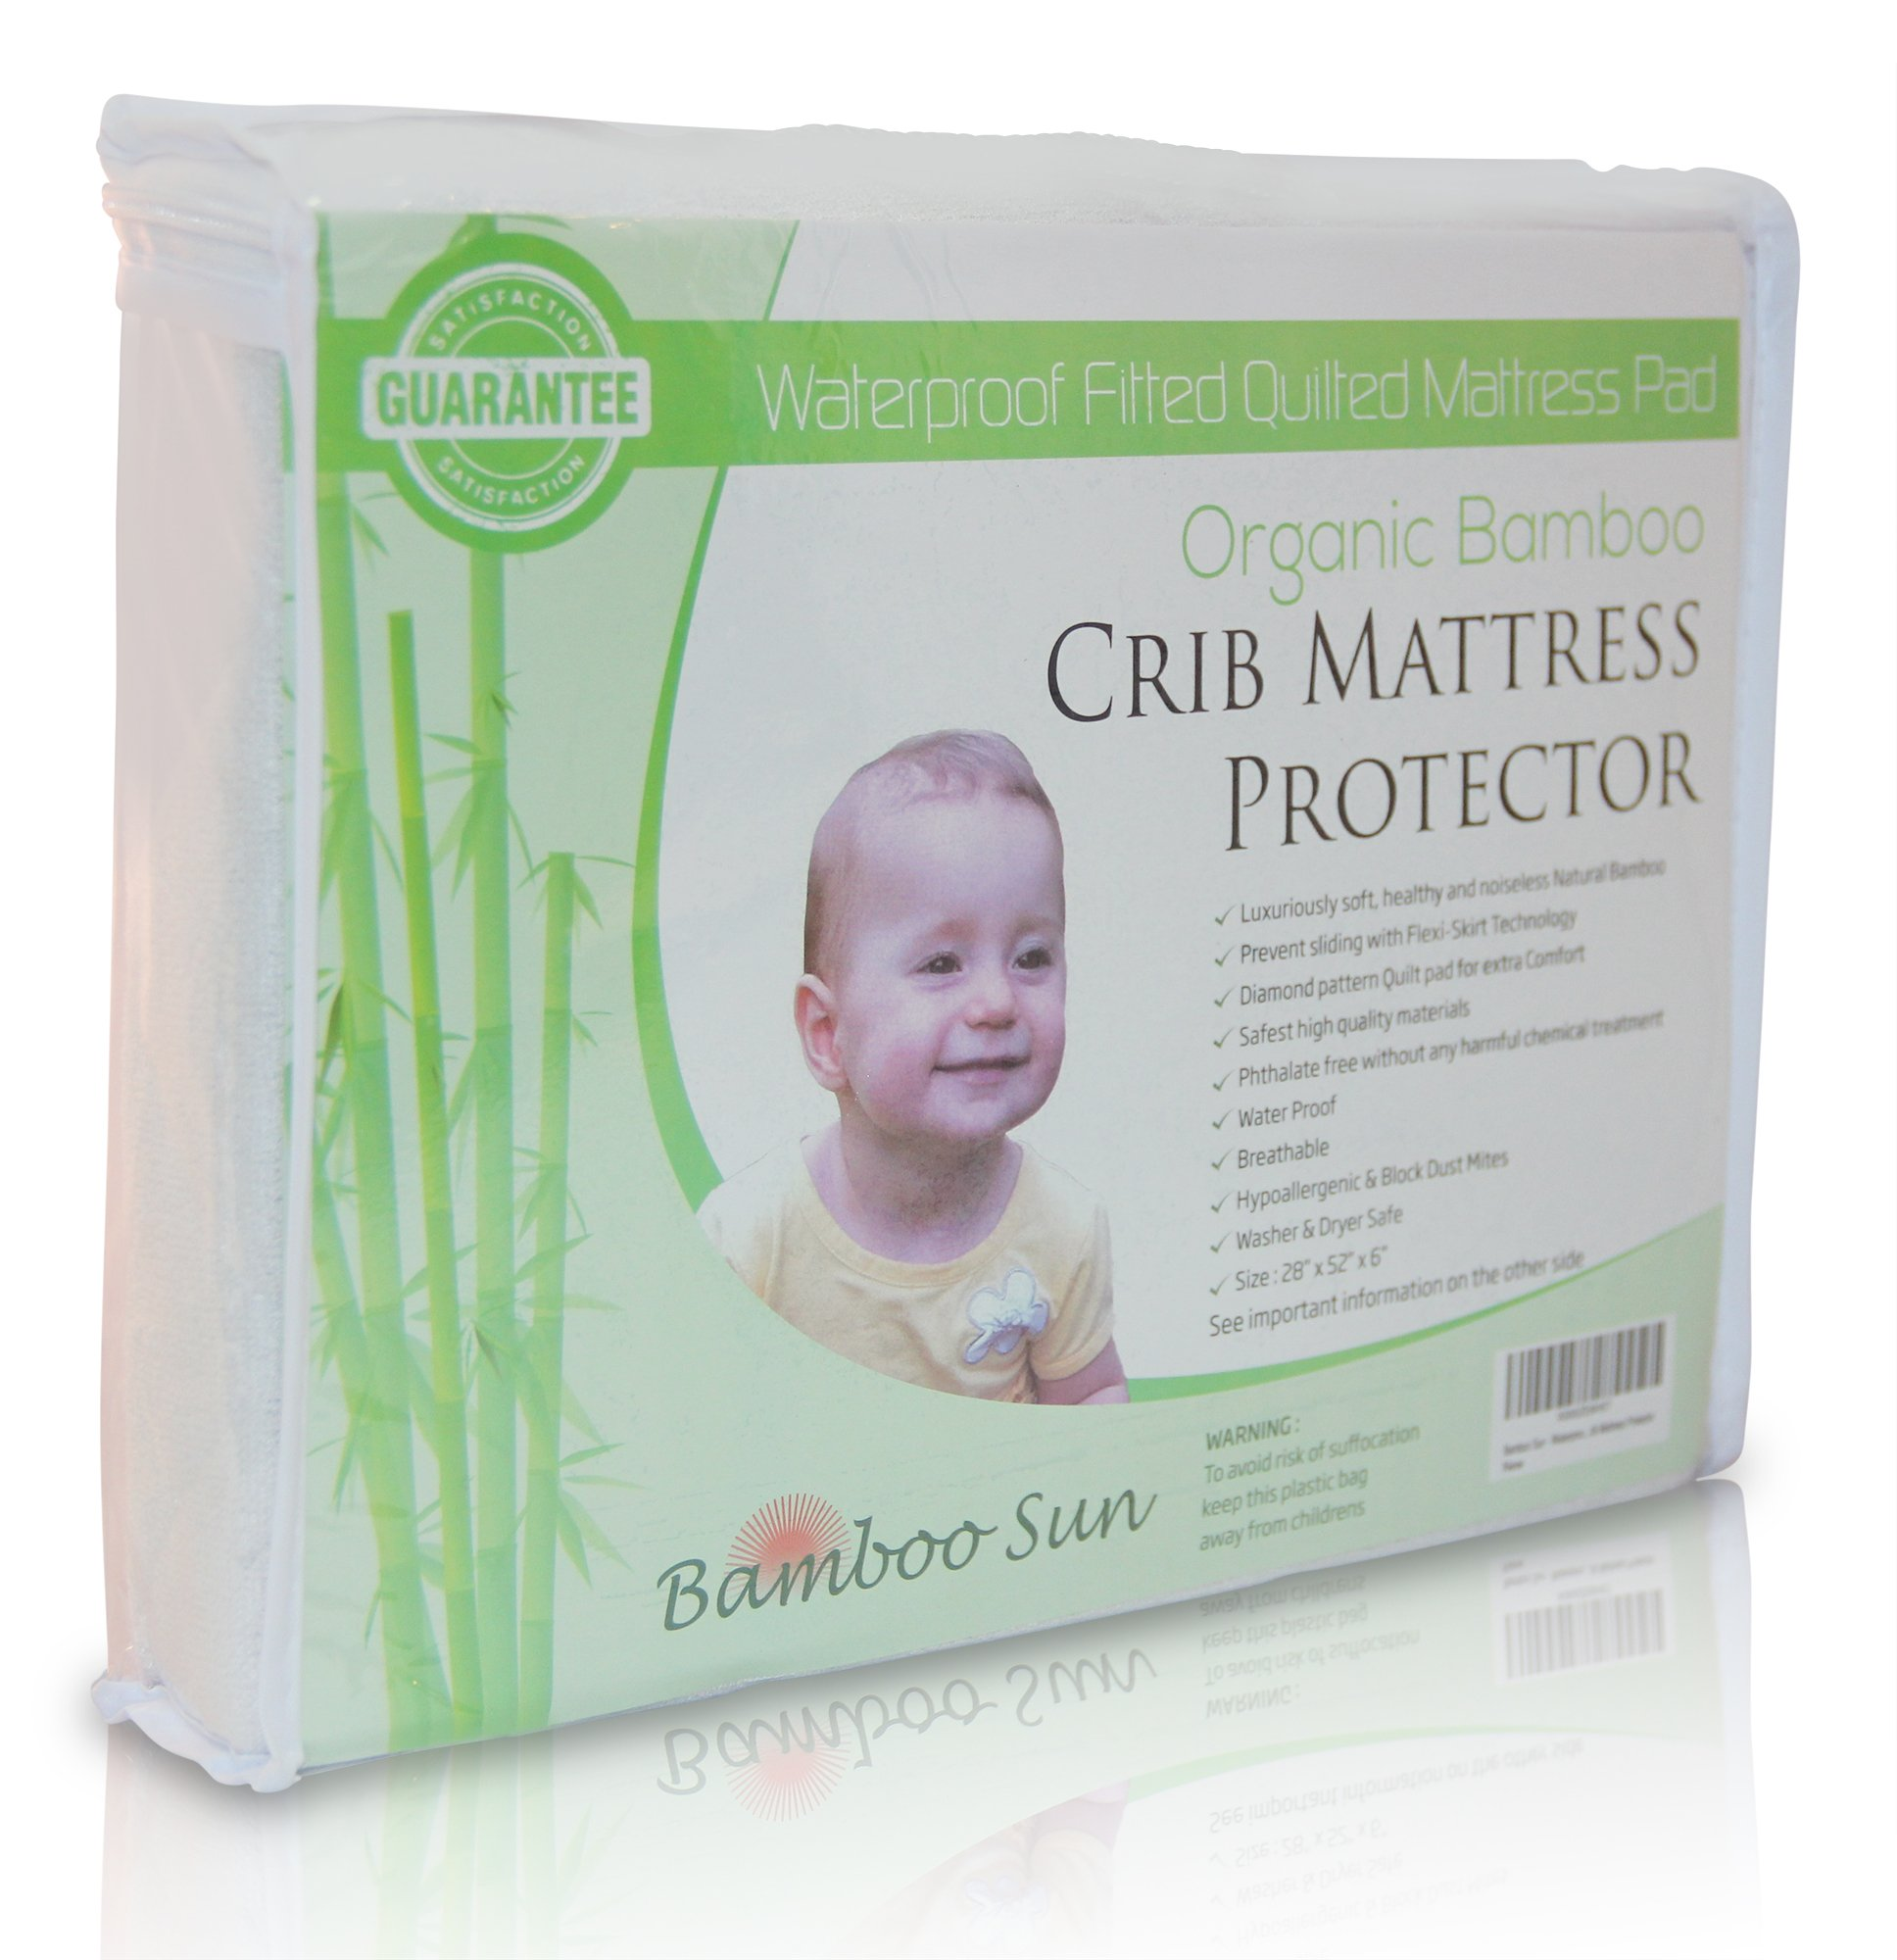 New, Improved and High Quality Organic Bamboo Crib Mattress Protector - Waterproof Fitted Quilted Mattress Pad (White)